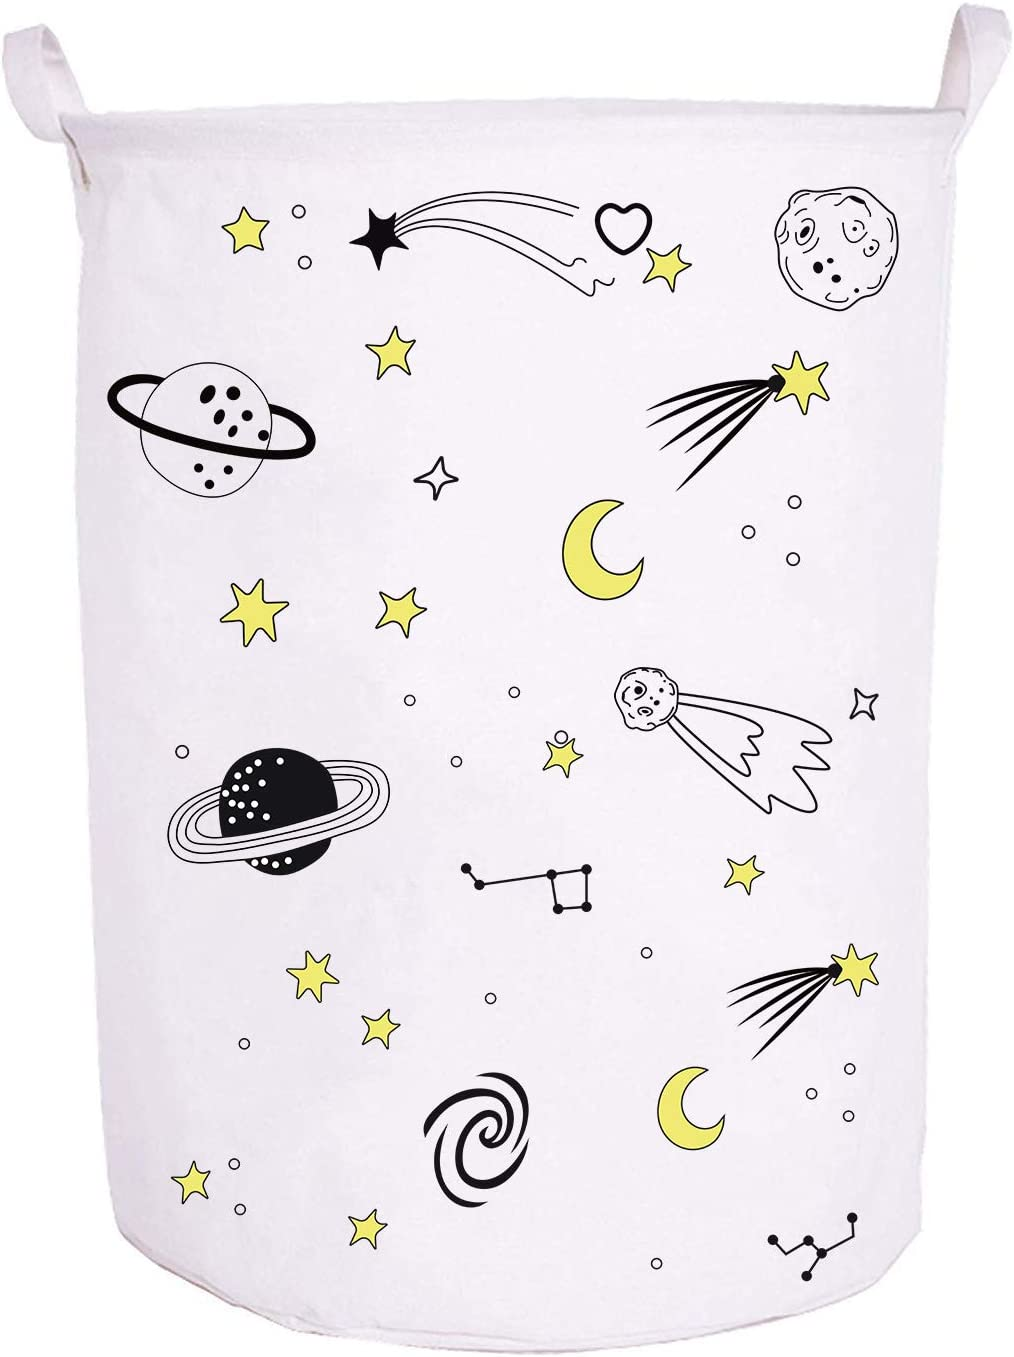 "Runtoo 19.7"" Large Sized Laundry Hamper Waterproof Foldable Canvas Outer Space Theme Bucket Clothing Laundry Basket with Handles for Storage Bins Kids Room Home Organizer Nursery Storage Baby Hamper"